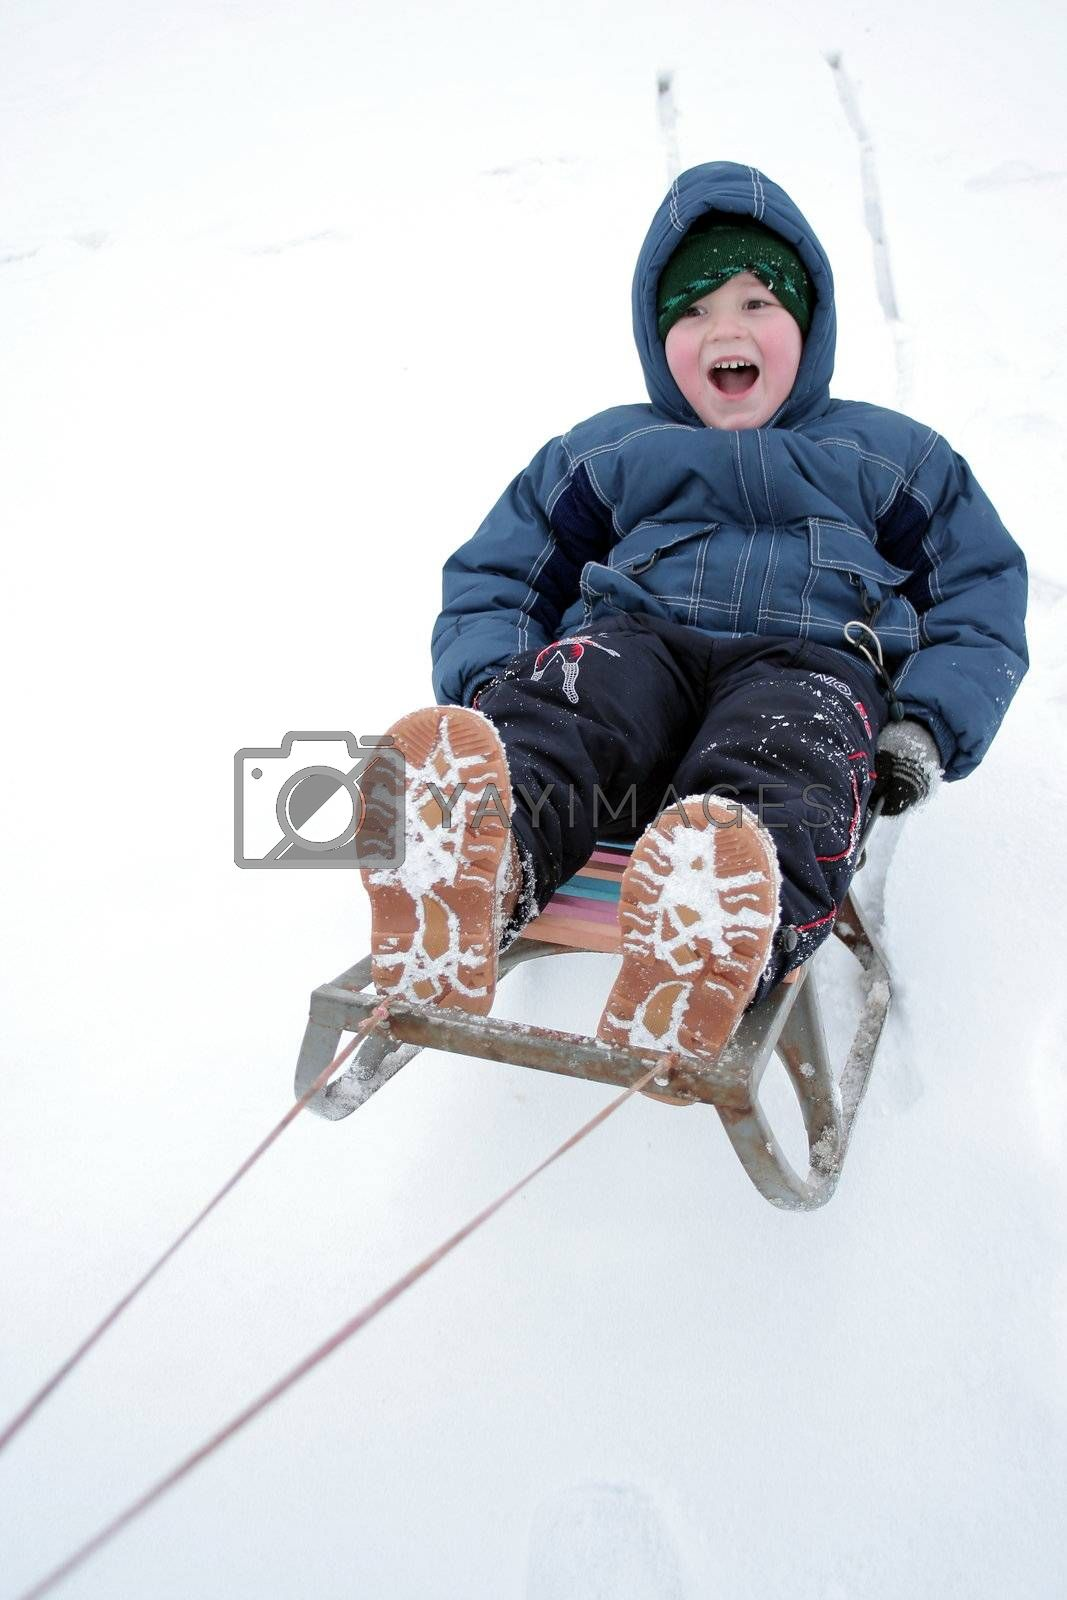 Winter riding of the boy on sled 2